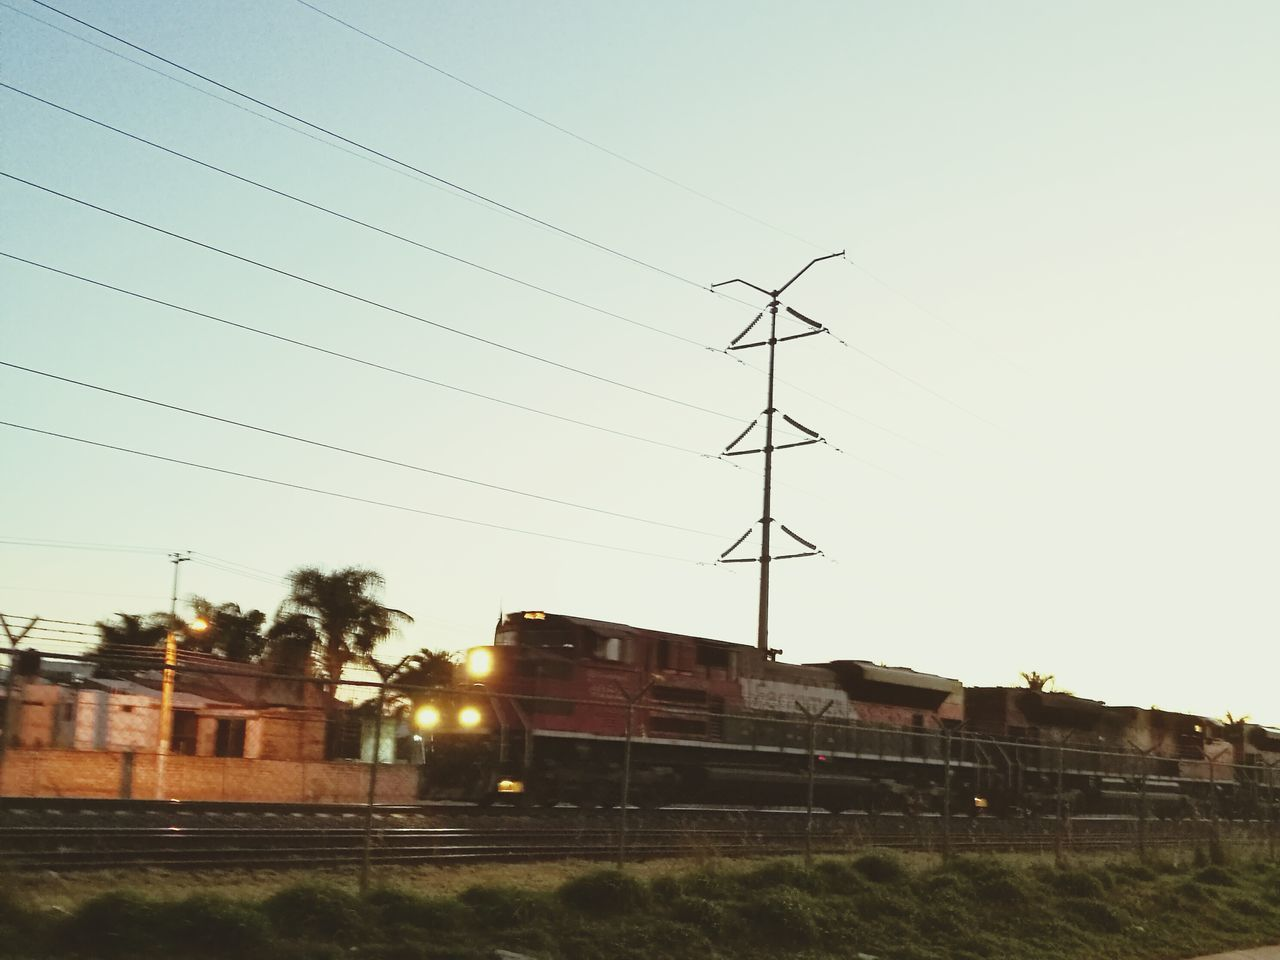 Train Train Tracks Sky Electric Tower  Sunset House Building Exterior Built Structure No People Outdoors Tree Architecture Transportation Road Nature Day